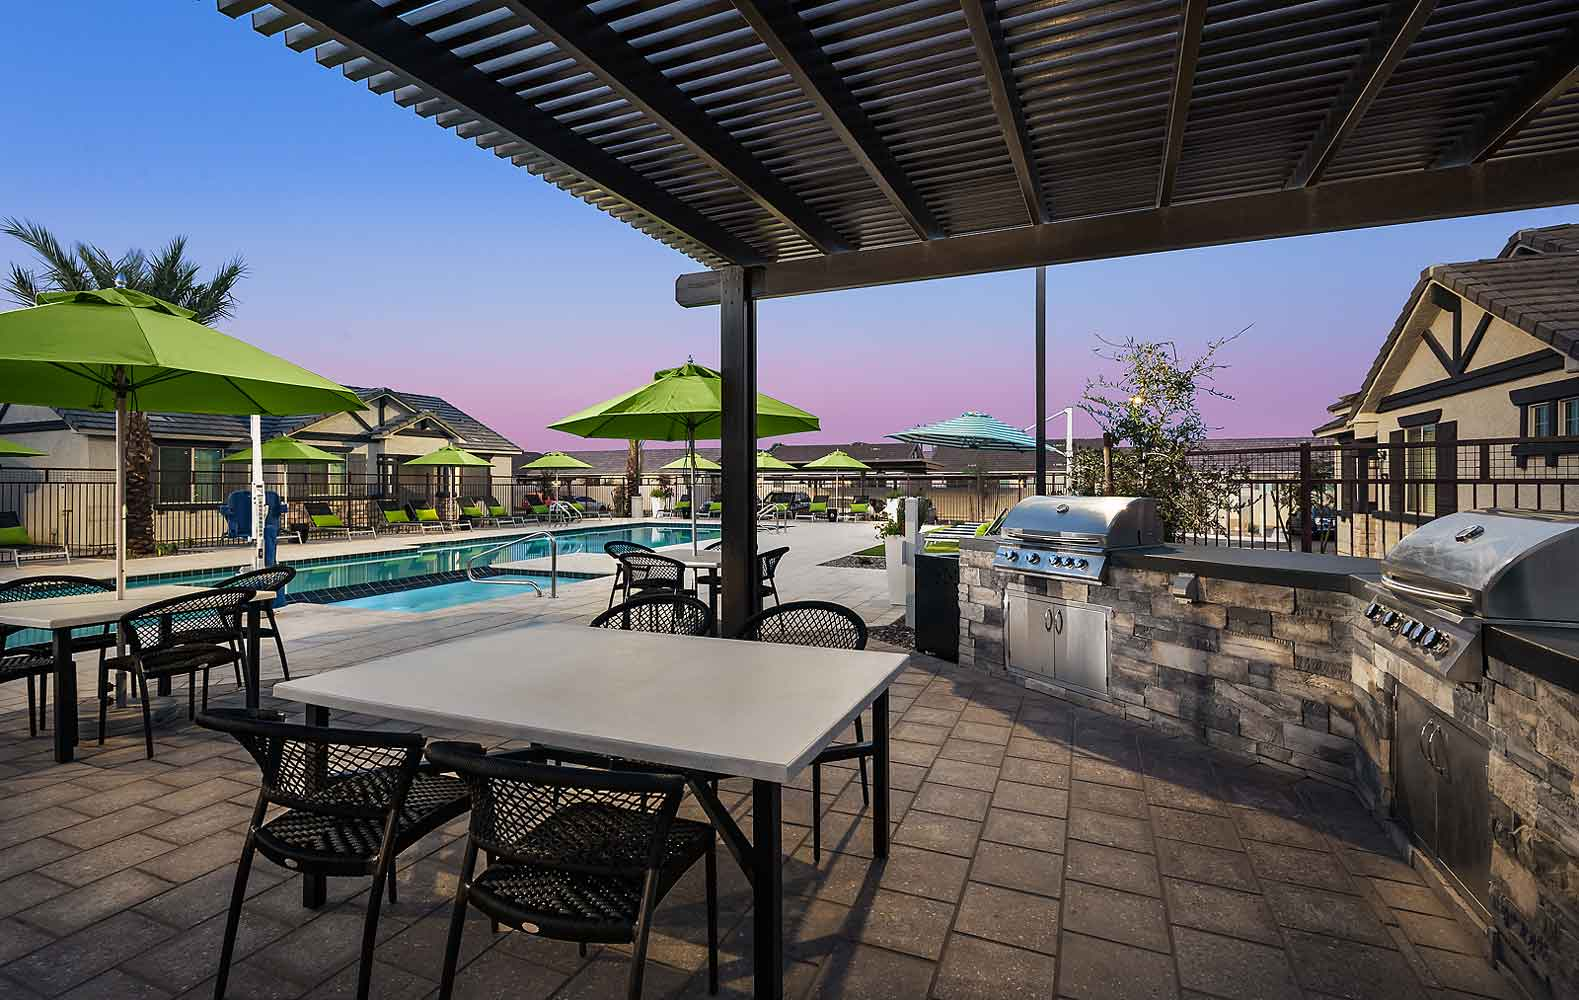 Barbeque Area at Olive Marketplace Apartments in Glendale, AZ